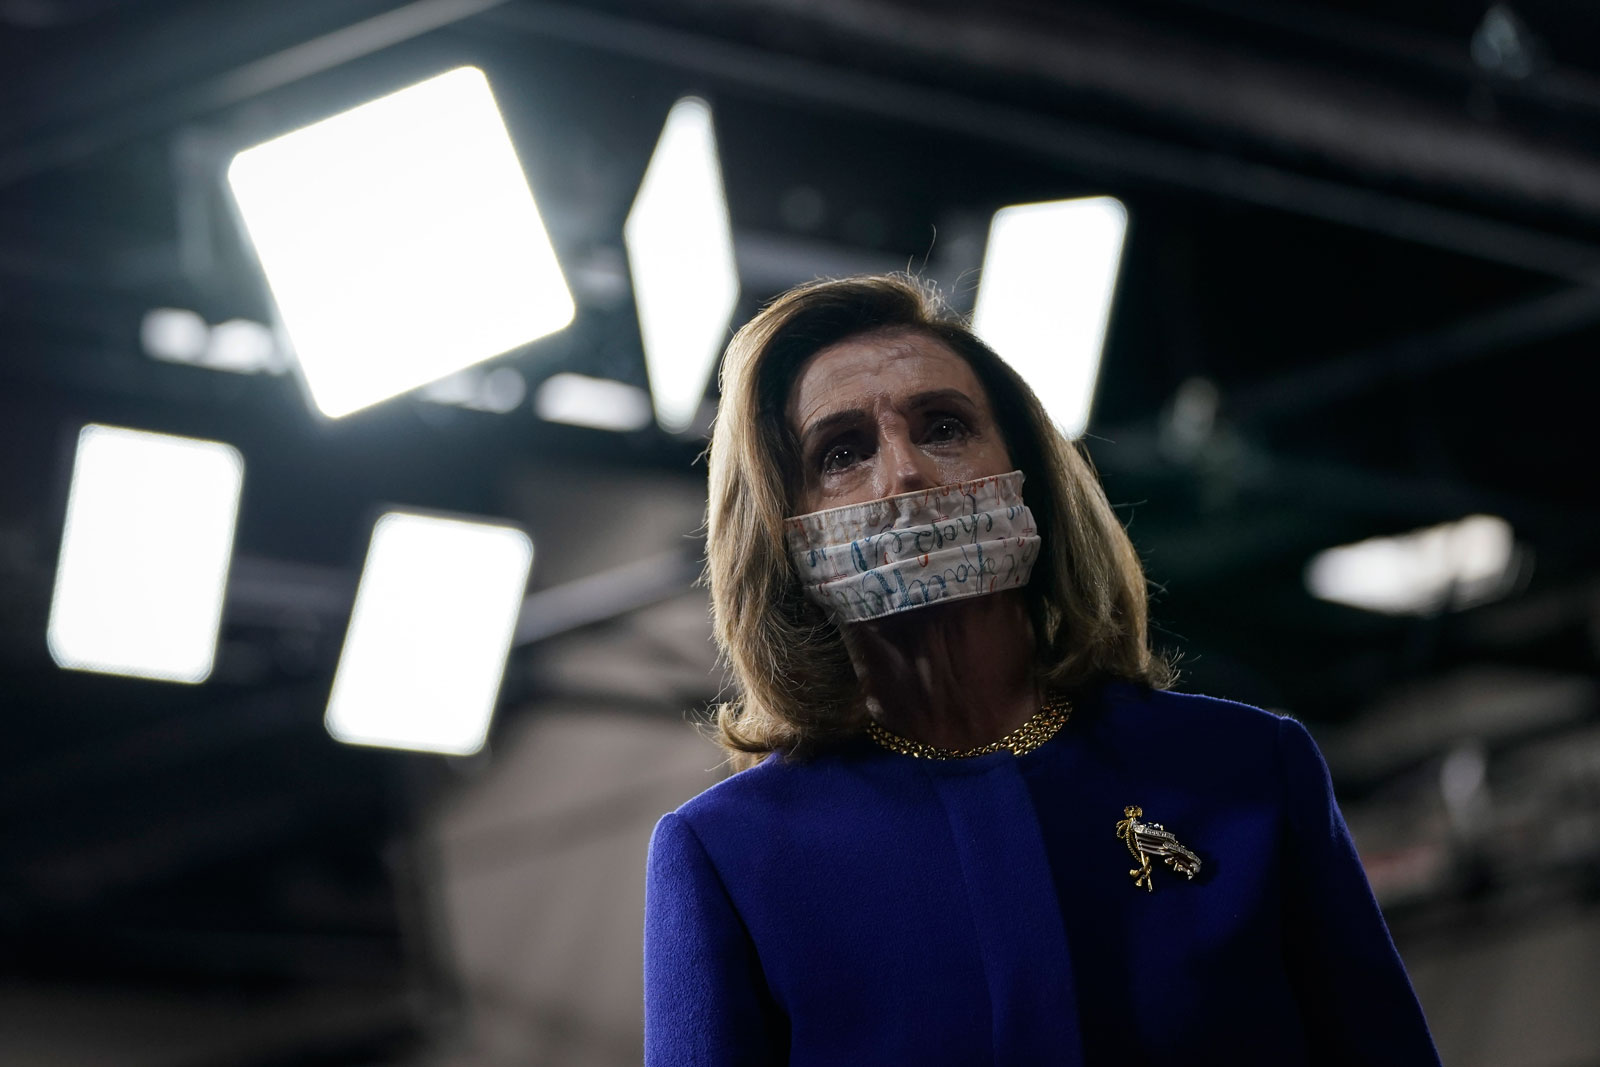 Speaker of the House Nancy Pelosi at a September 23 news conference where House Democrats introduced the Protecting Our Democracy Act.